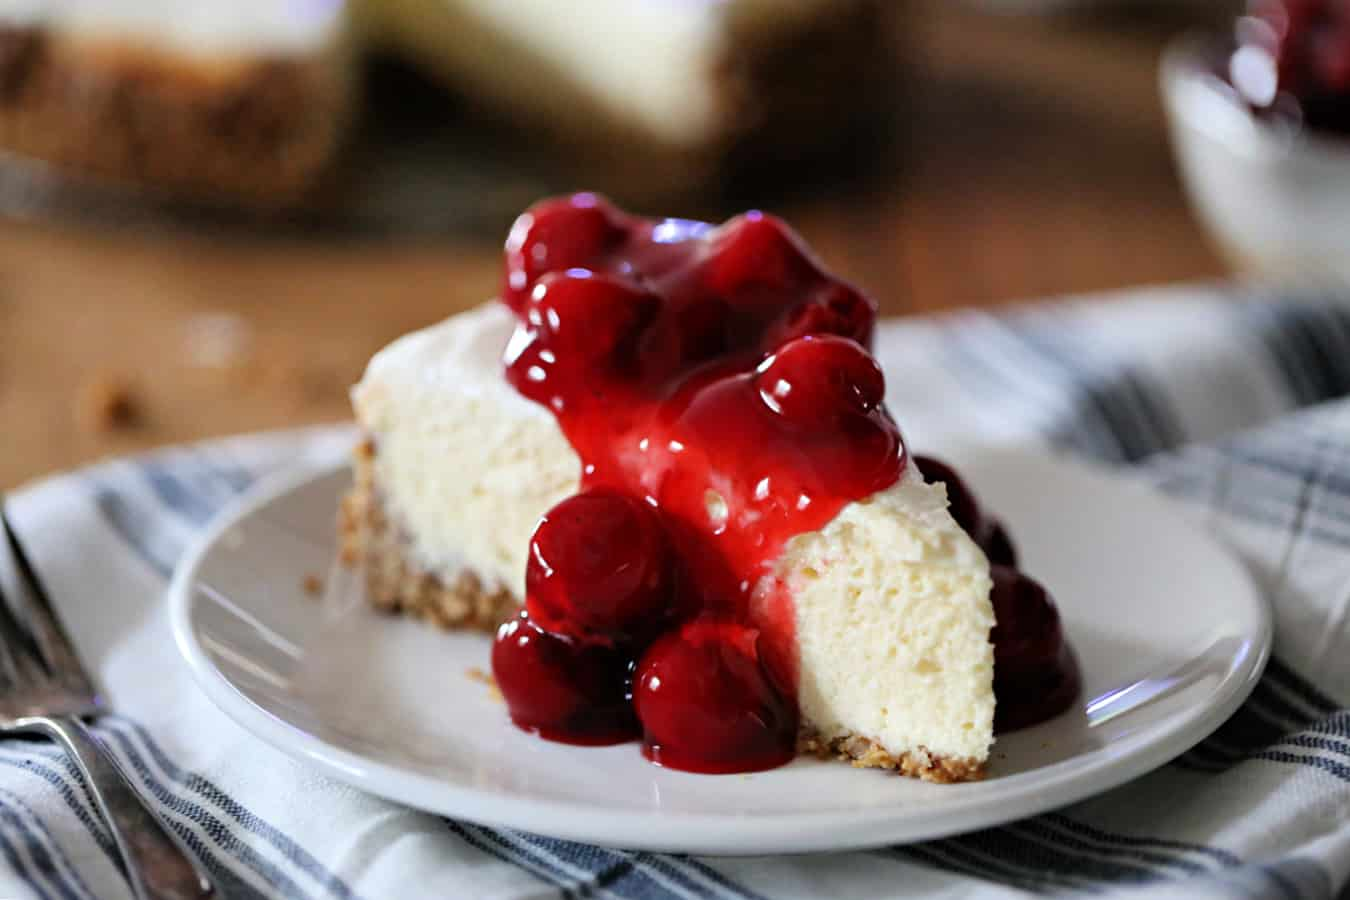 slice of baked cheesecake with cherries on top